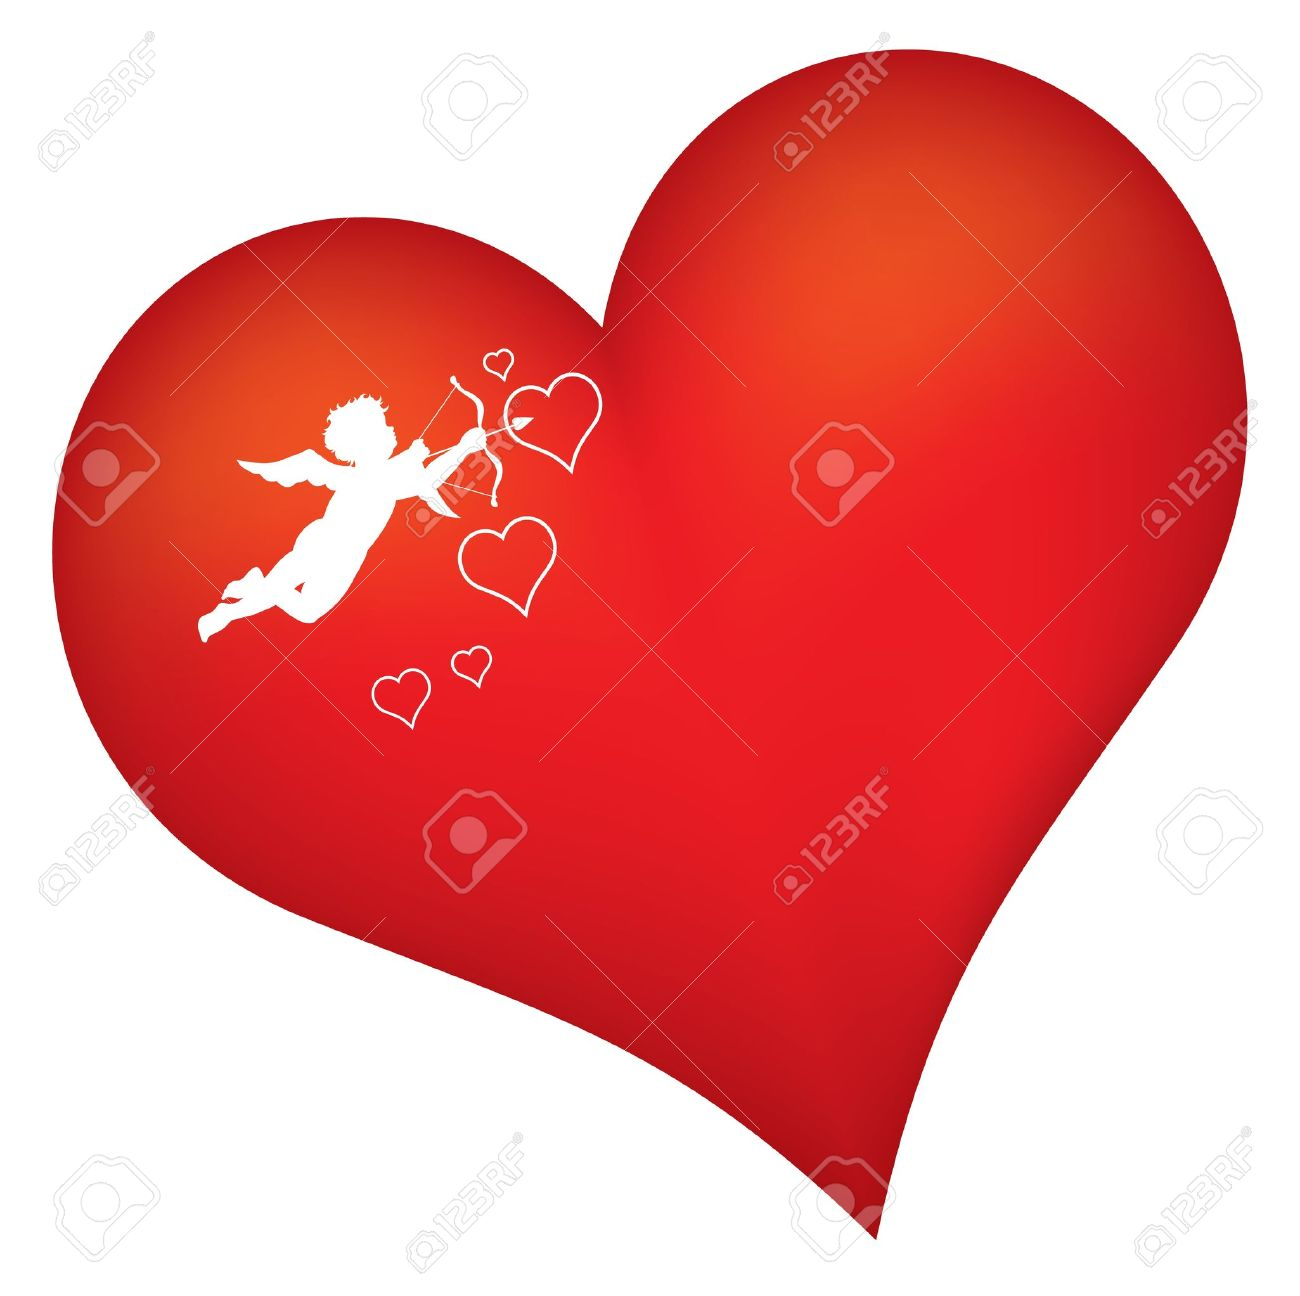 Red Heart With Cupid Silhouette Royalty Free Cliparts Vectors And